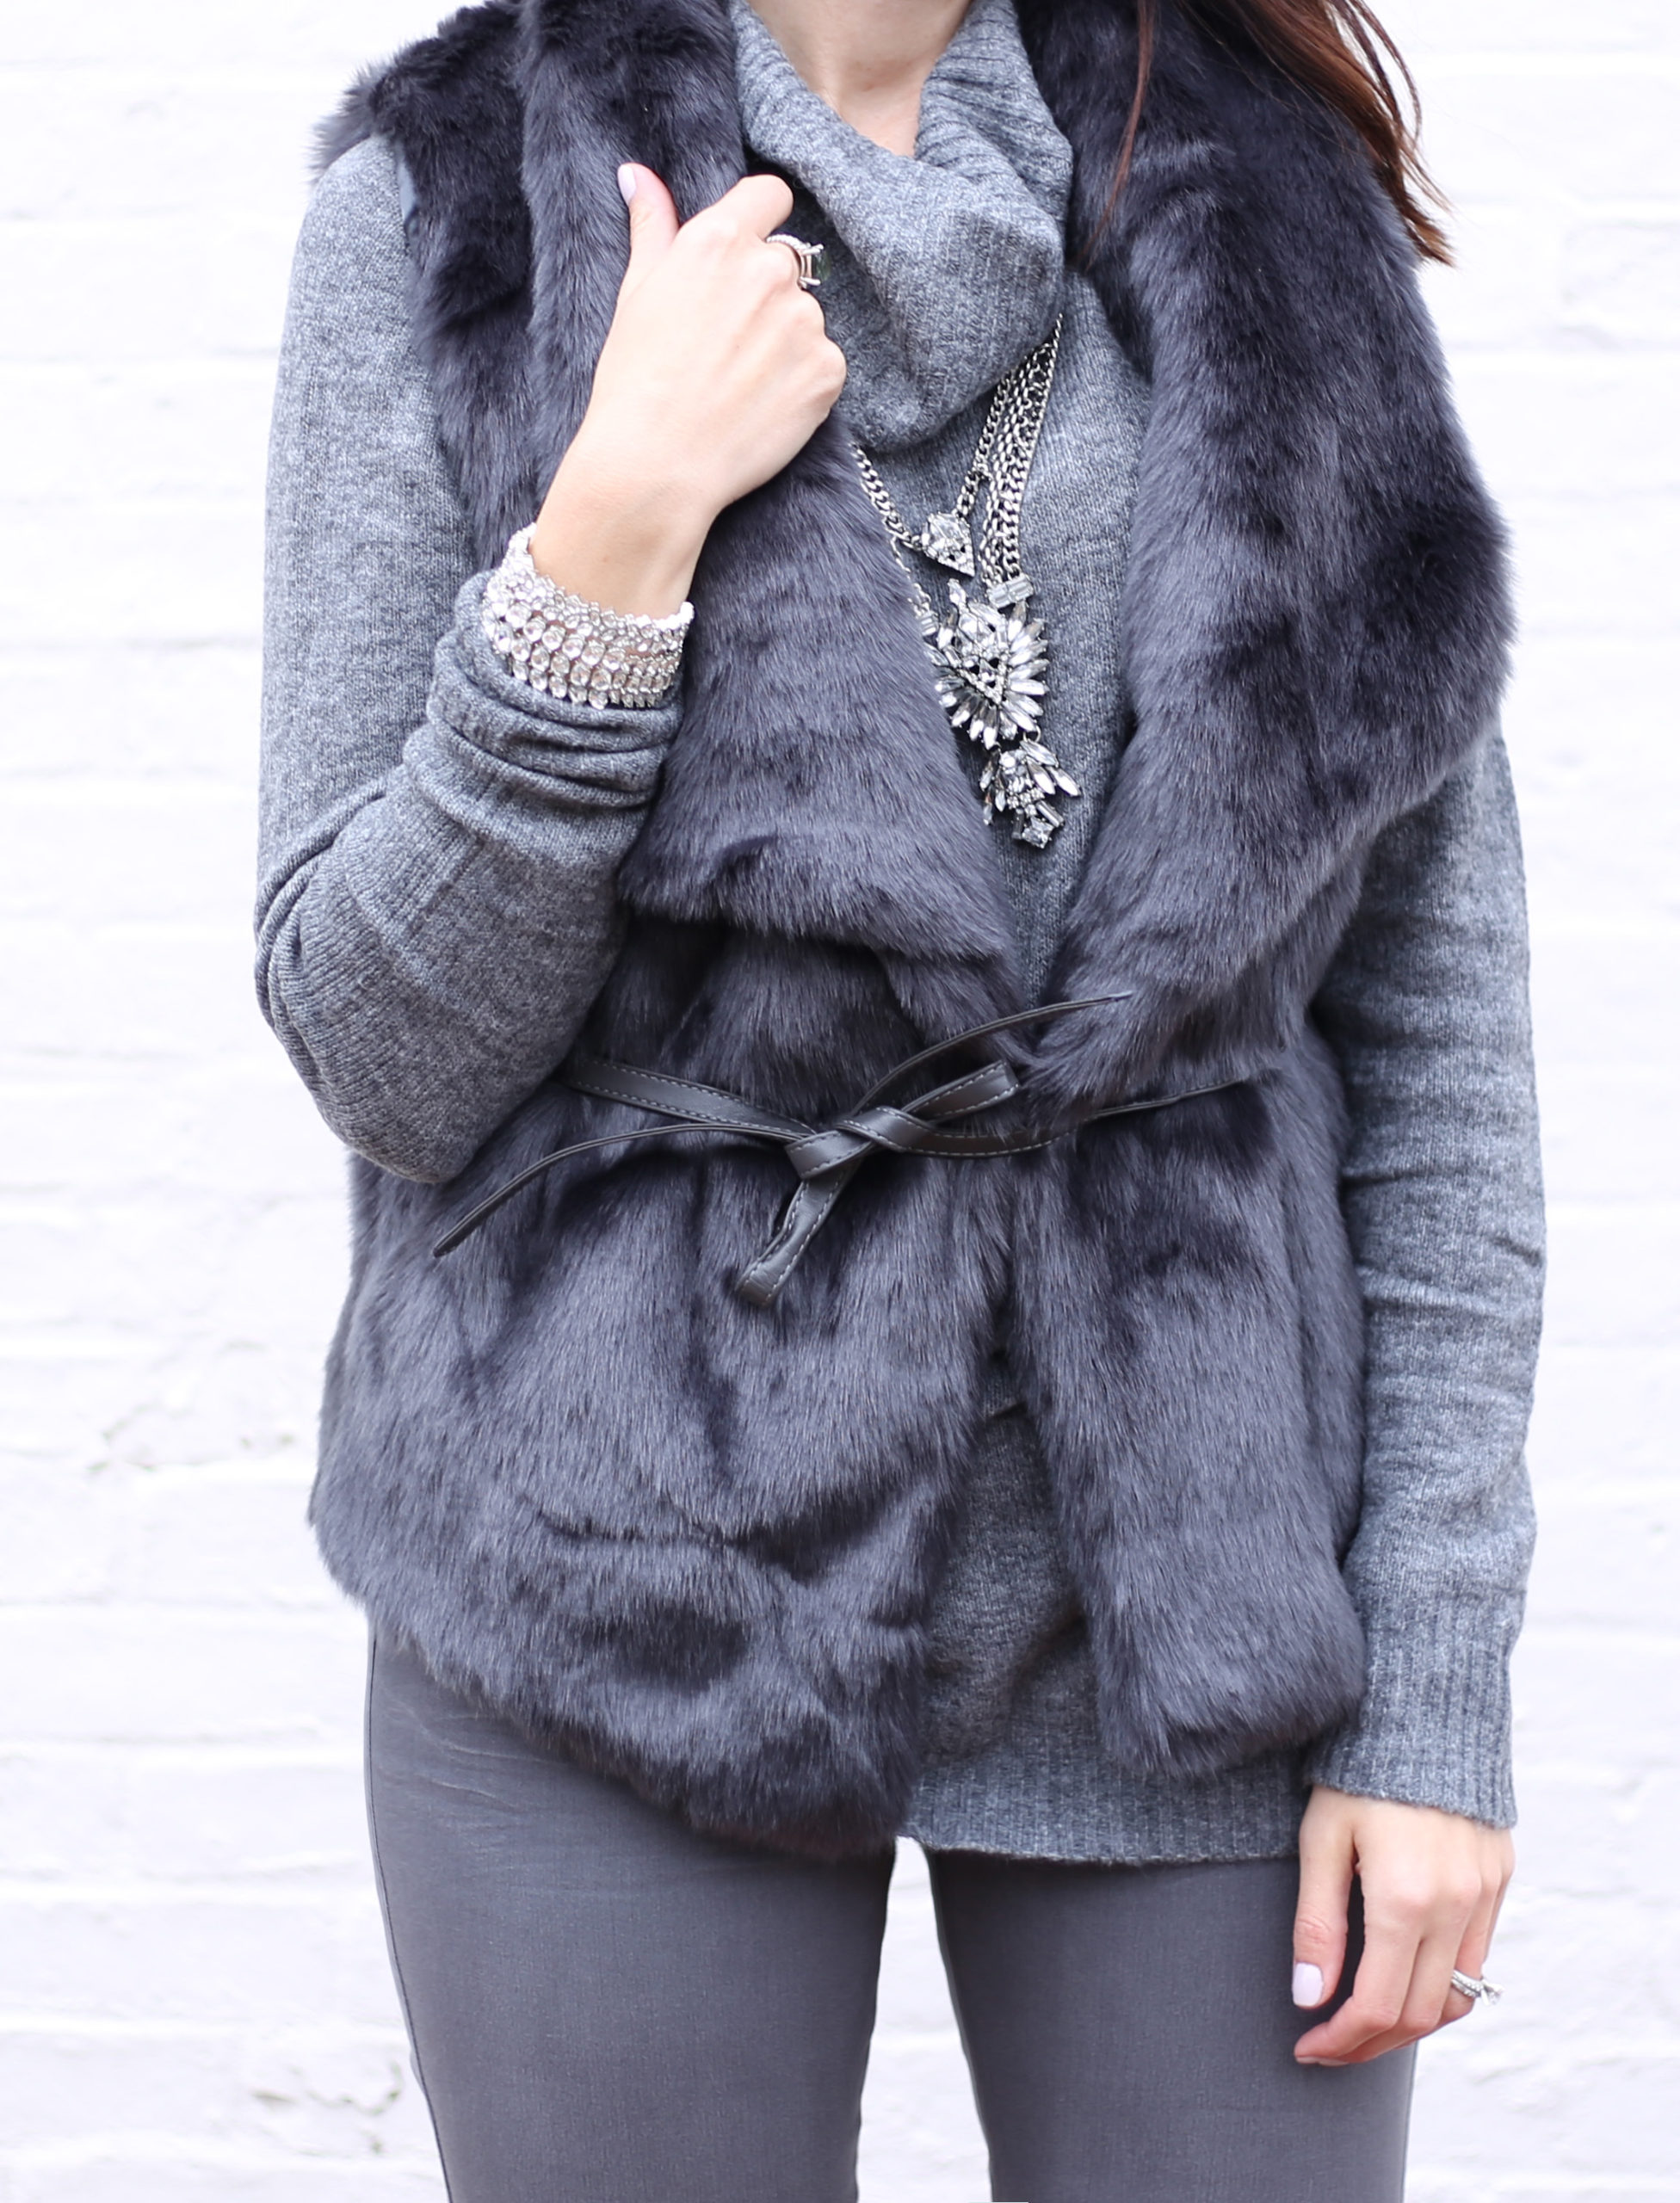 Faux Fur Vests and Over the Knee Boots